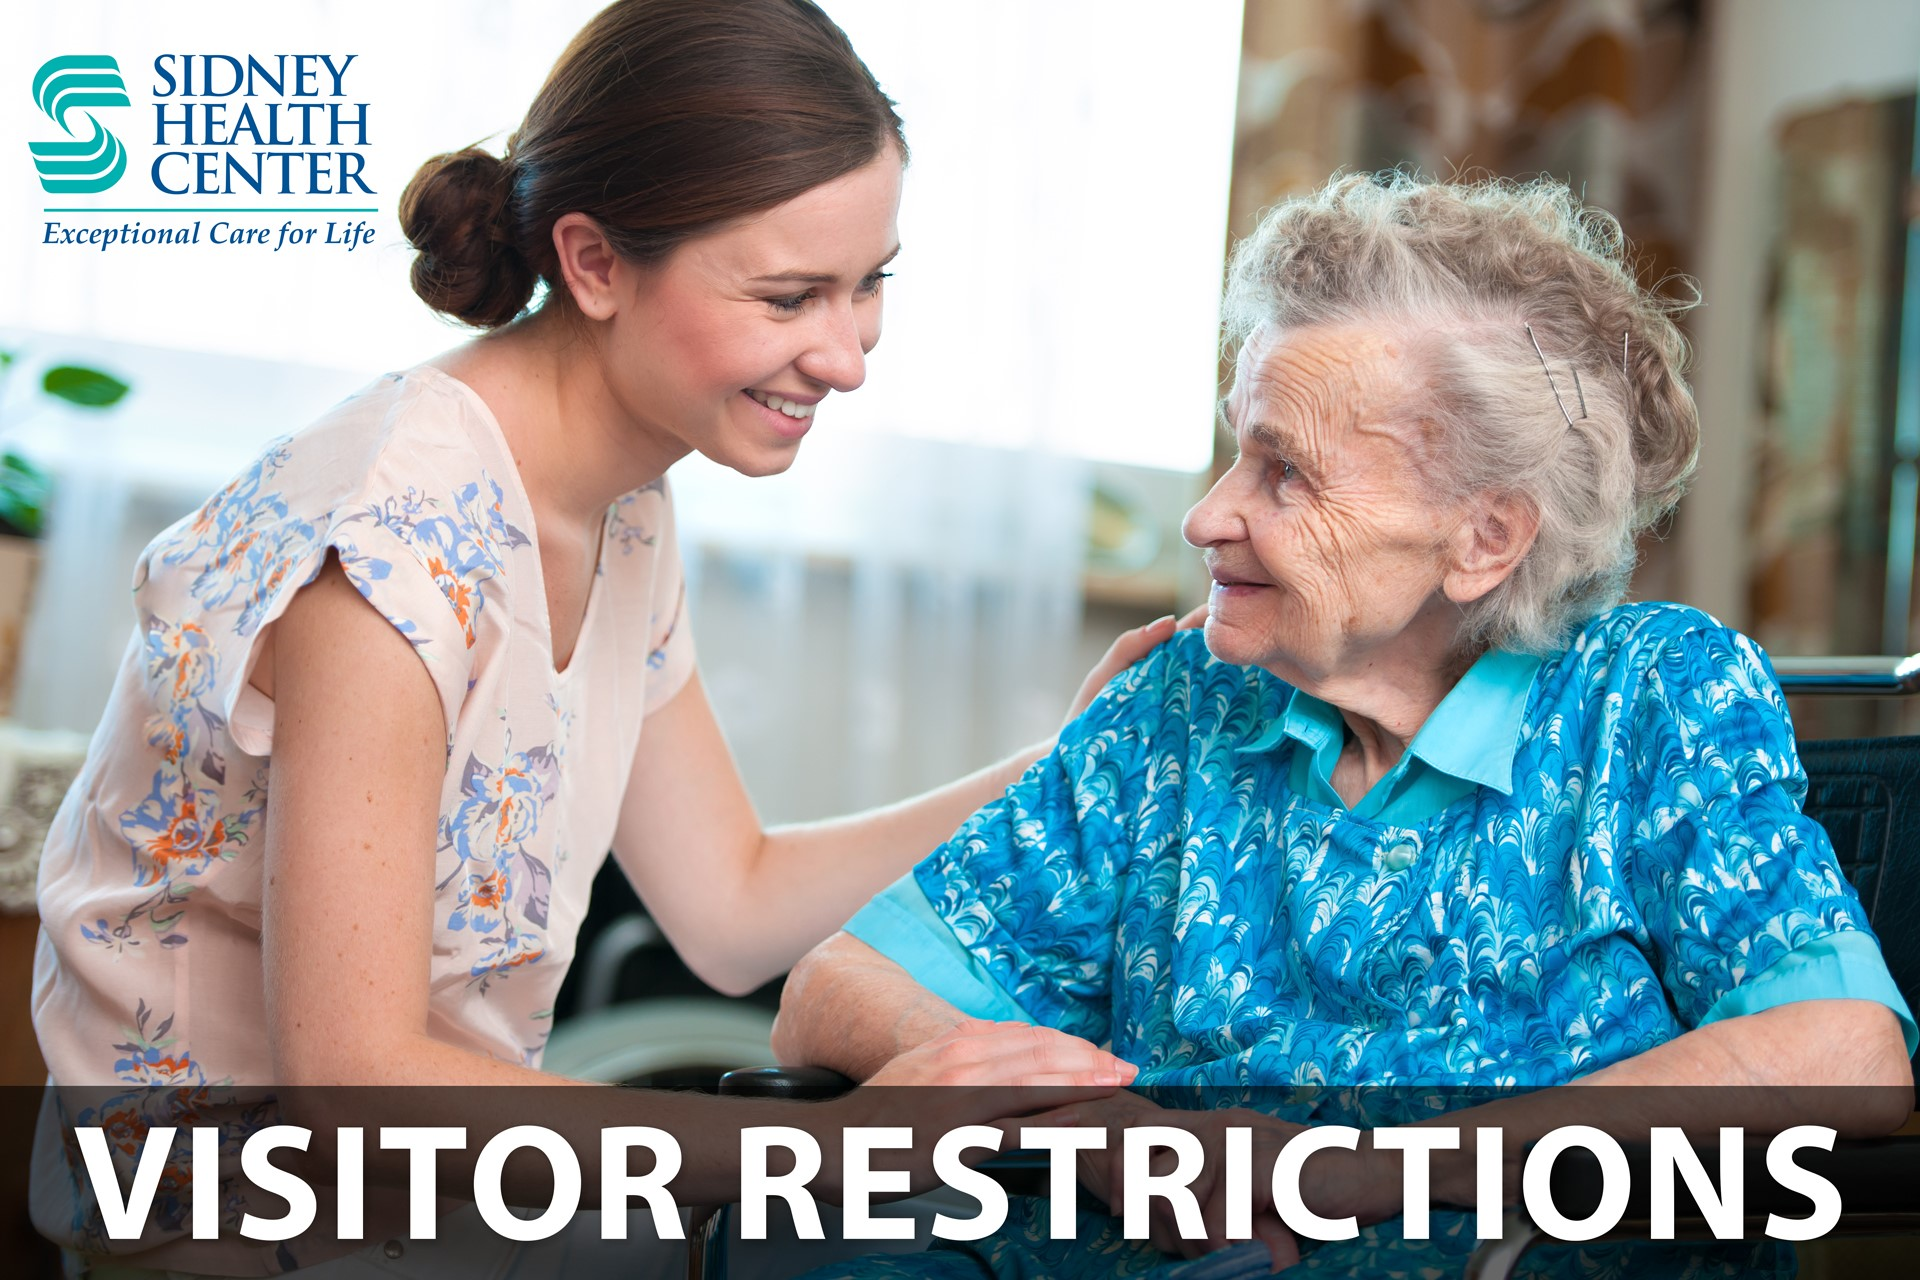 Extended Care and The Lodge Visitation Restrictions